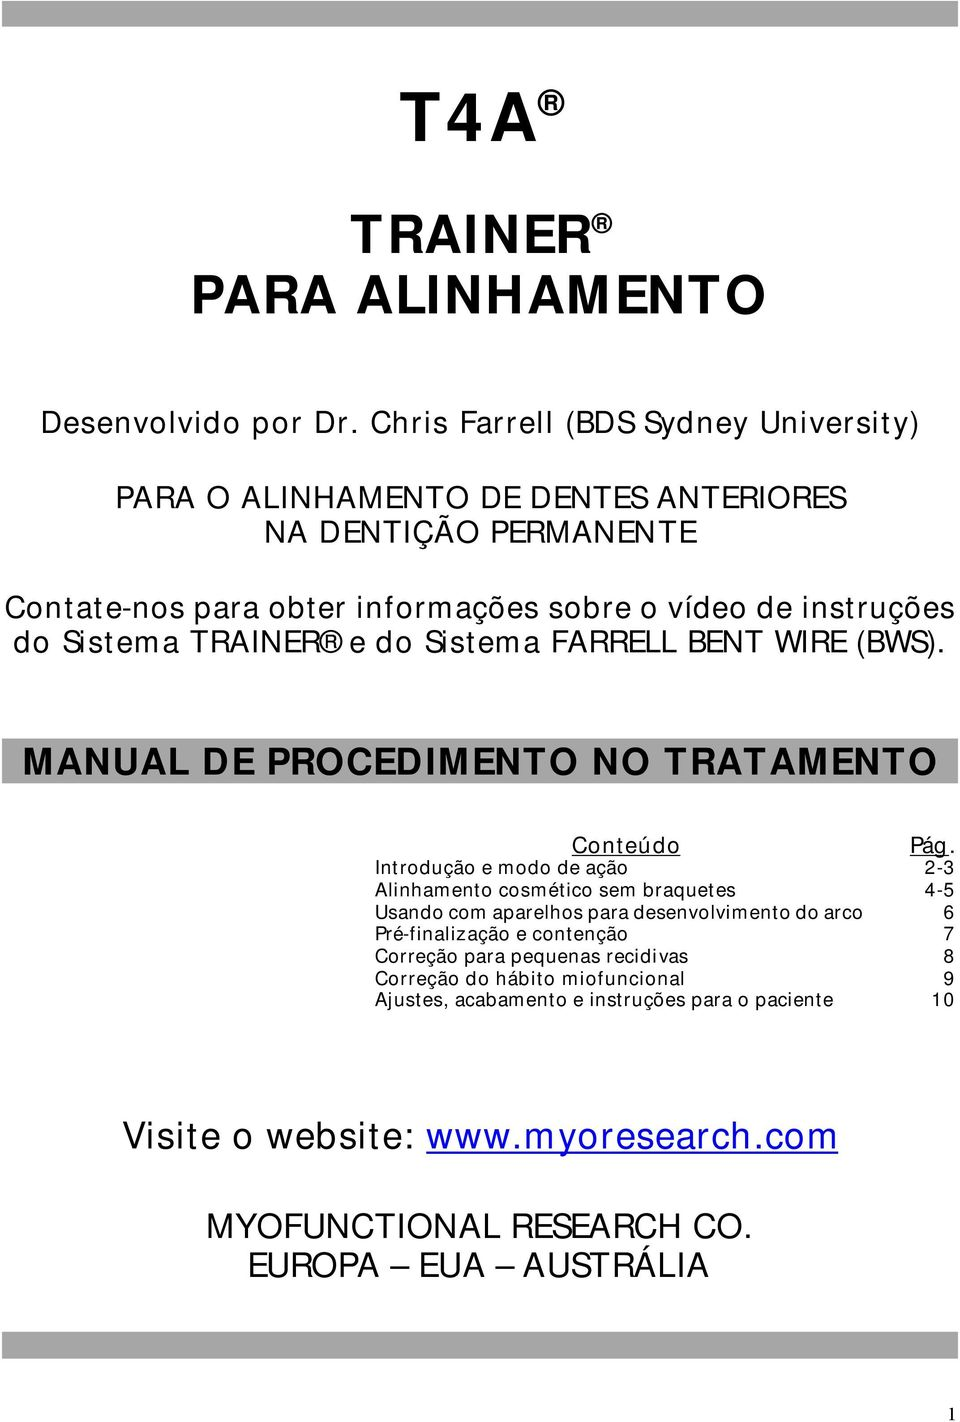 Sistema TRAINER e do Sistema FARRELL BENT WIRE (BWS).